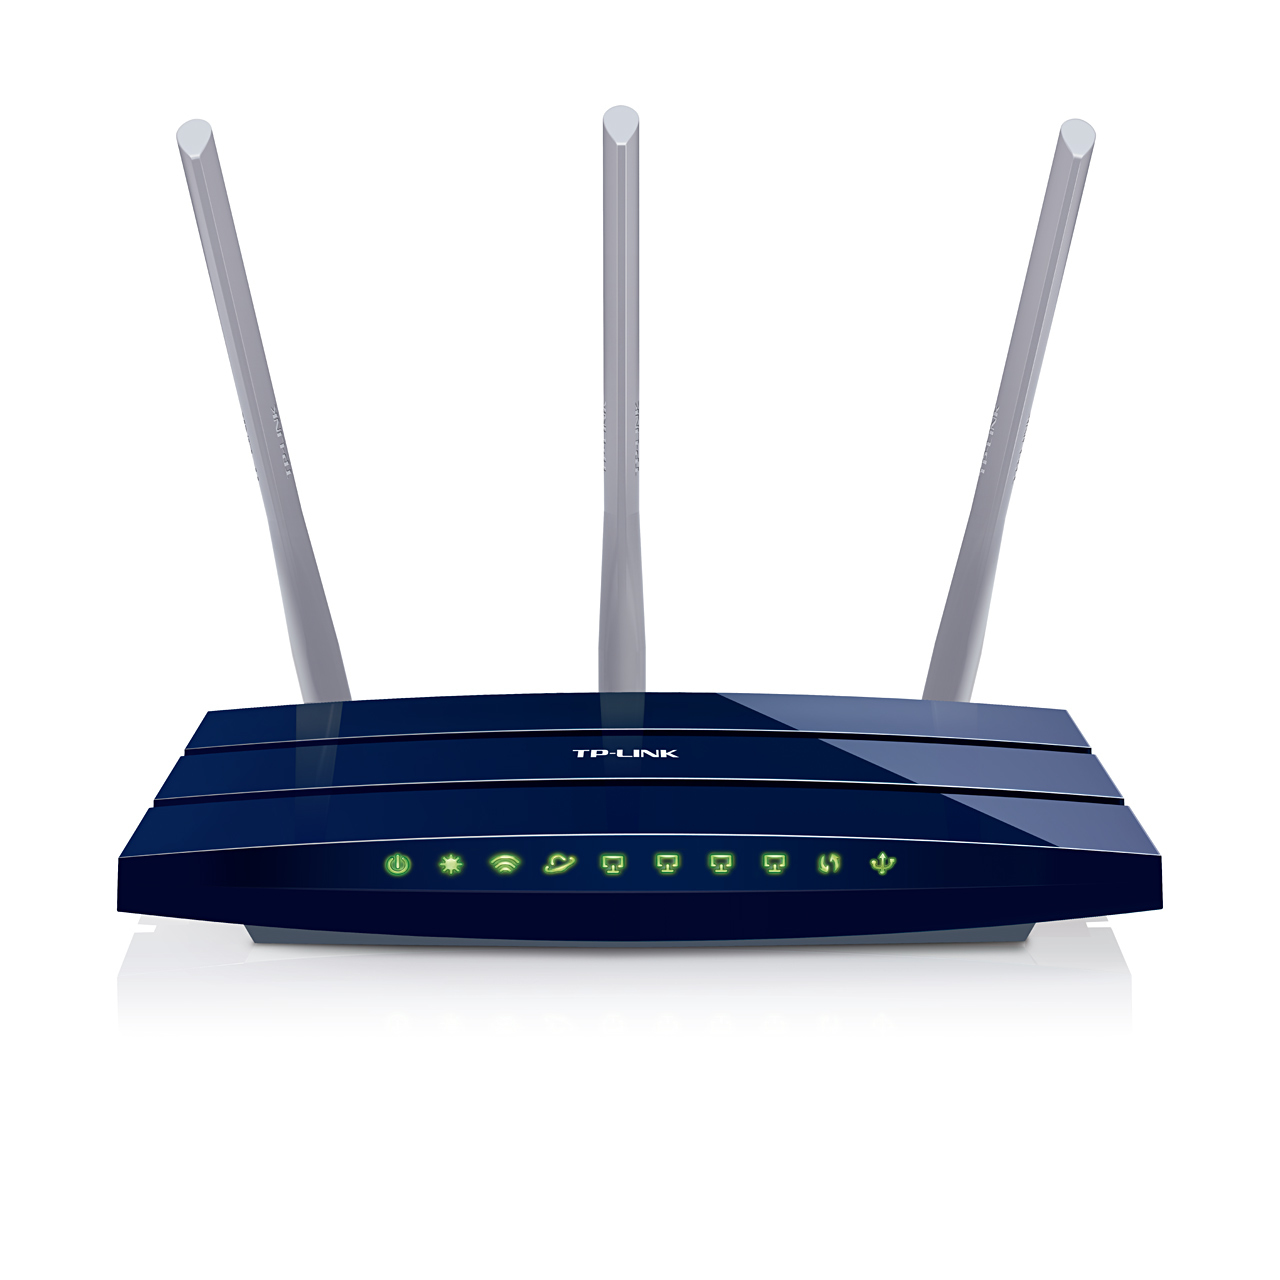 Image of TP-LINK TL-WR1043ND Ultimate 300Mbps Wireless N Gigabit Router - Router - WLAN 1.000 Mbps - Wireless USB Externe